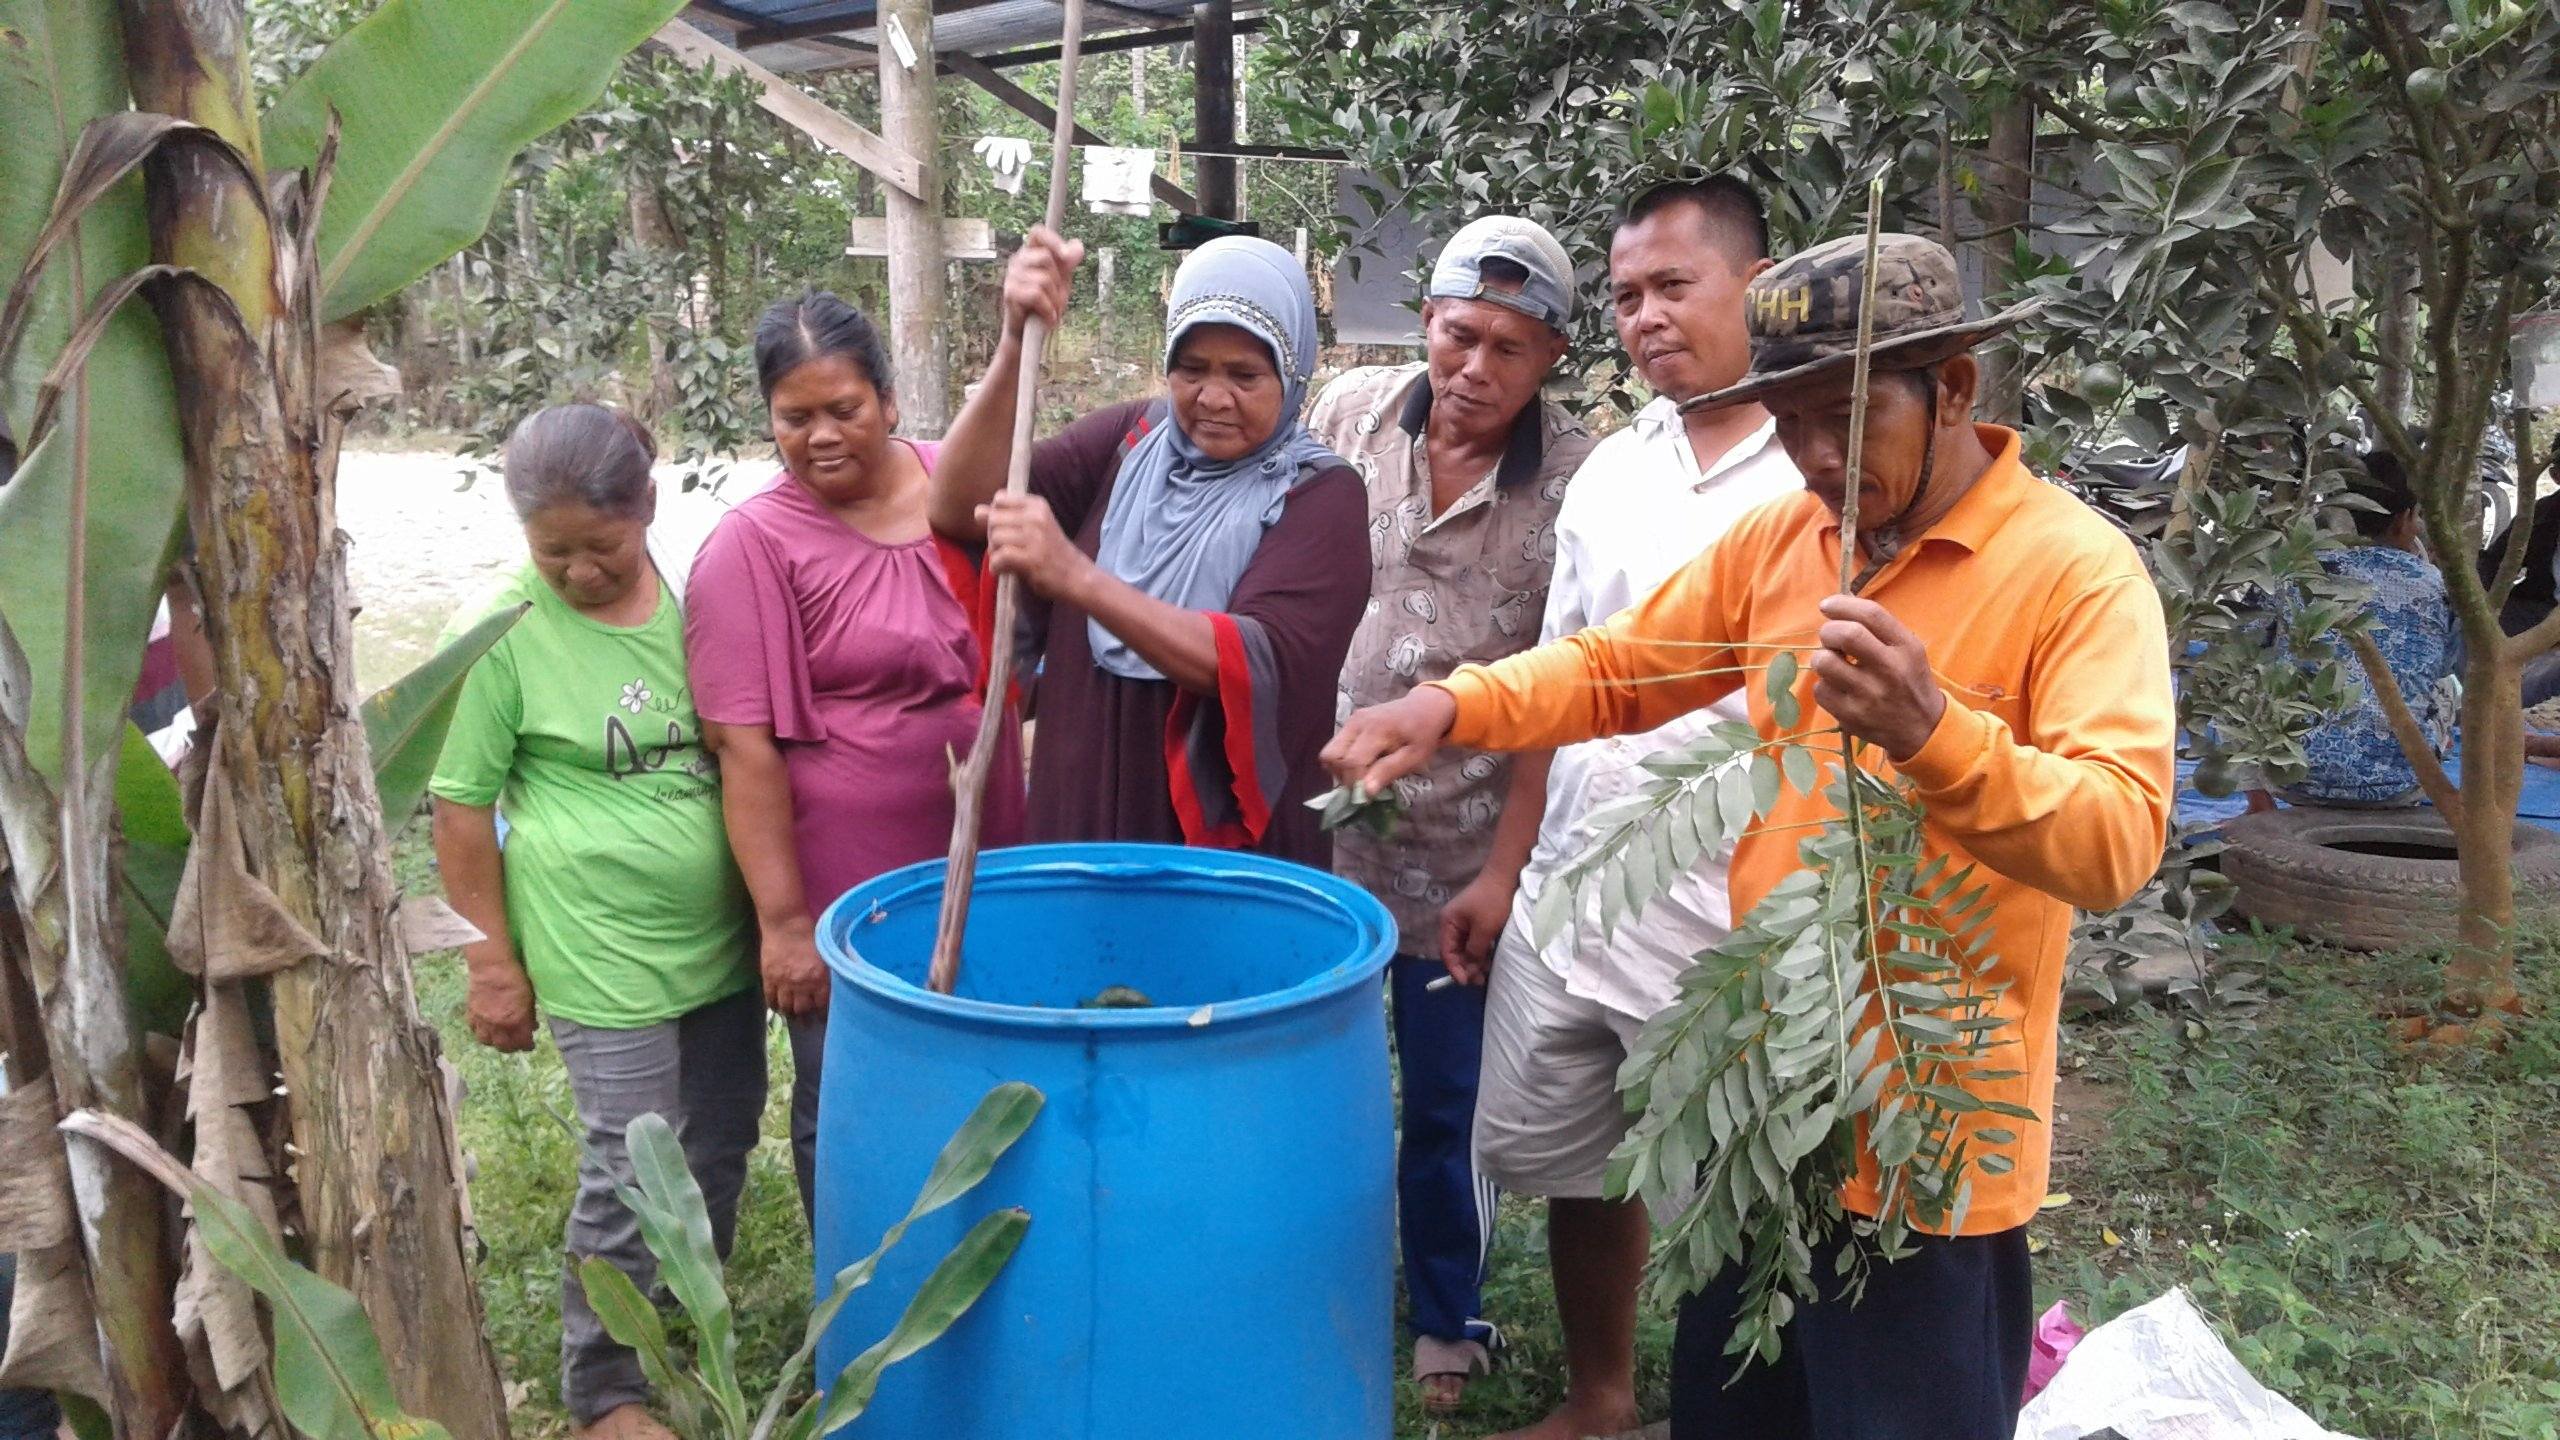 Community development program through sustainable agricultural practice